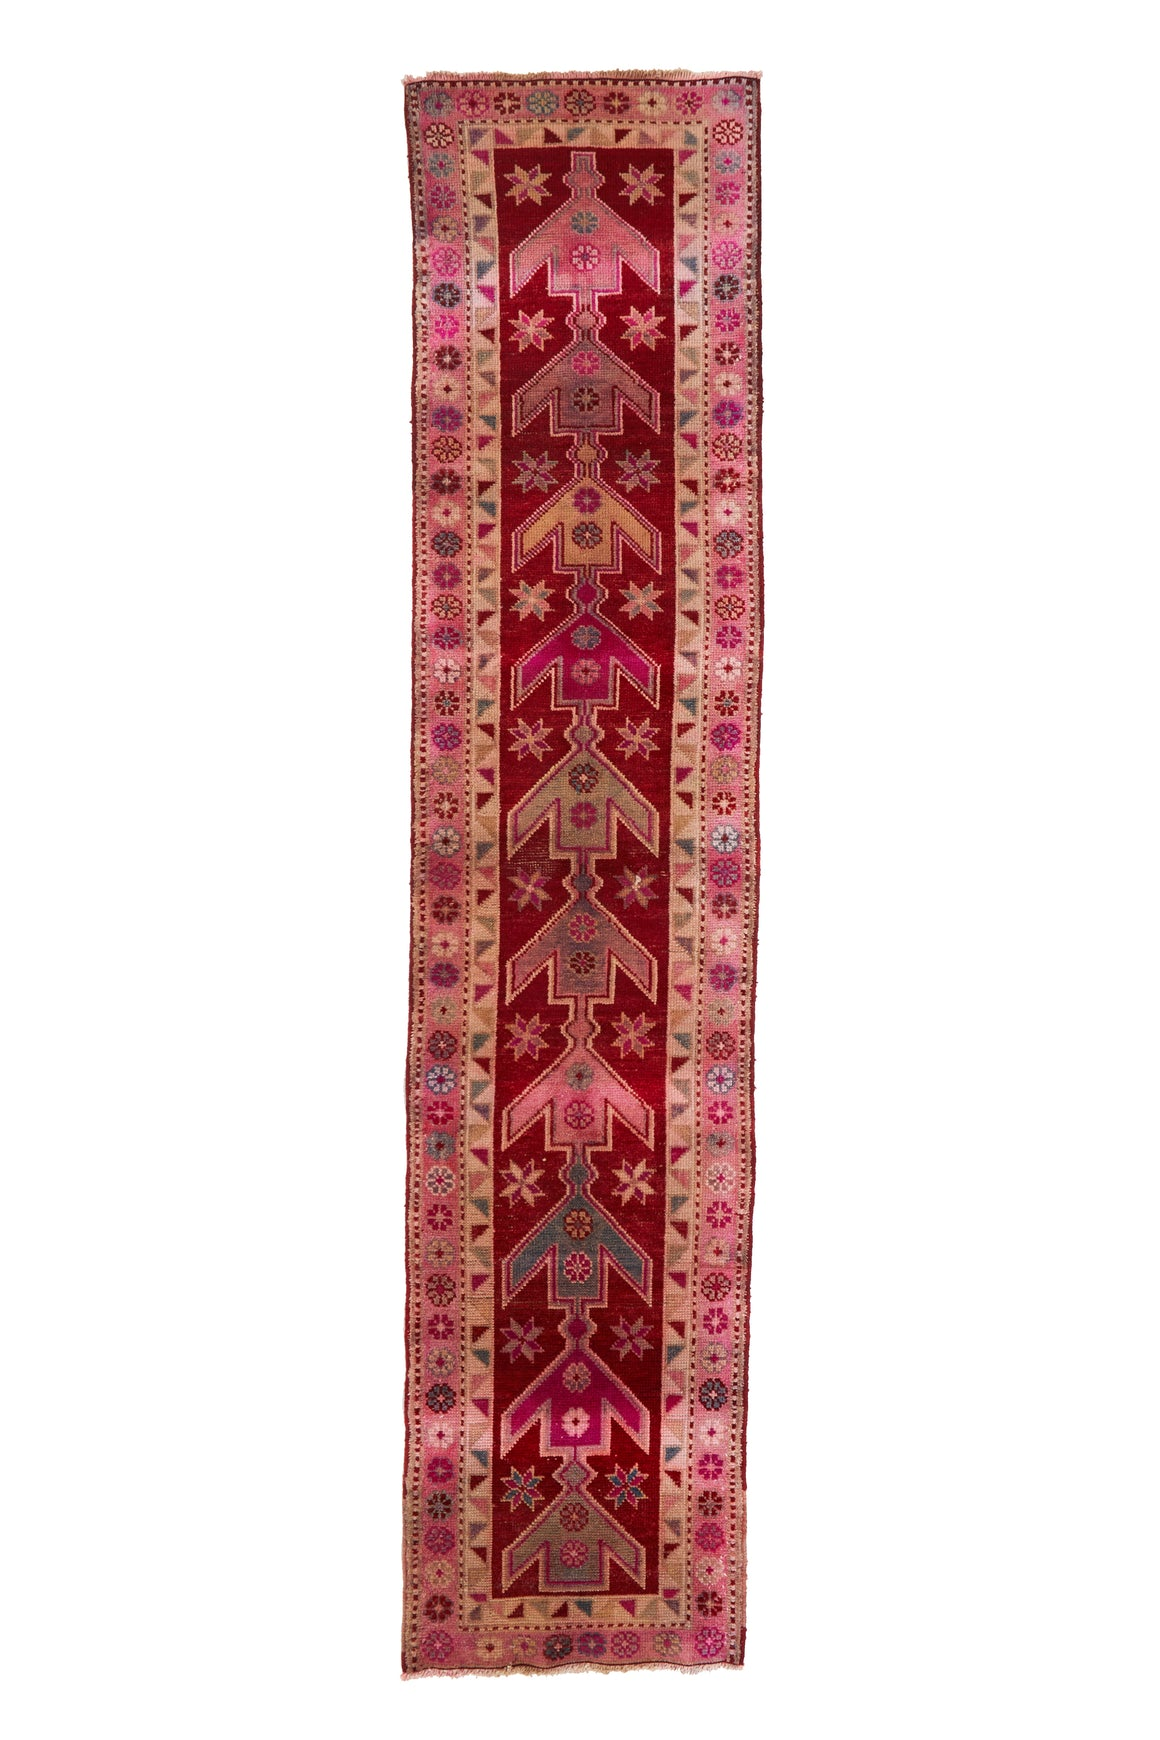 "'Violette' Turkish Runner Rug - 2'9"" x 12'5'' - Canary Lane - Curated Textiles"